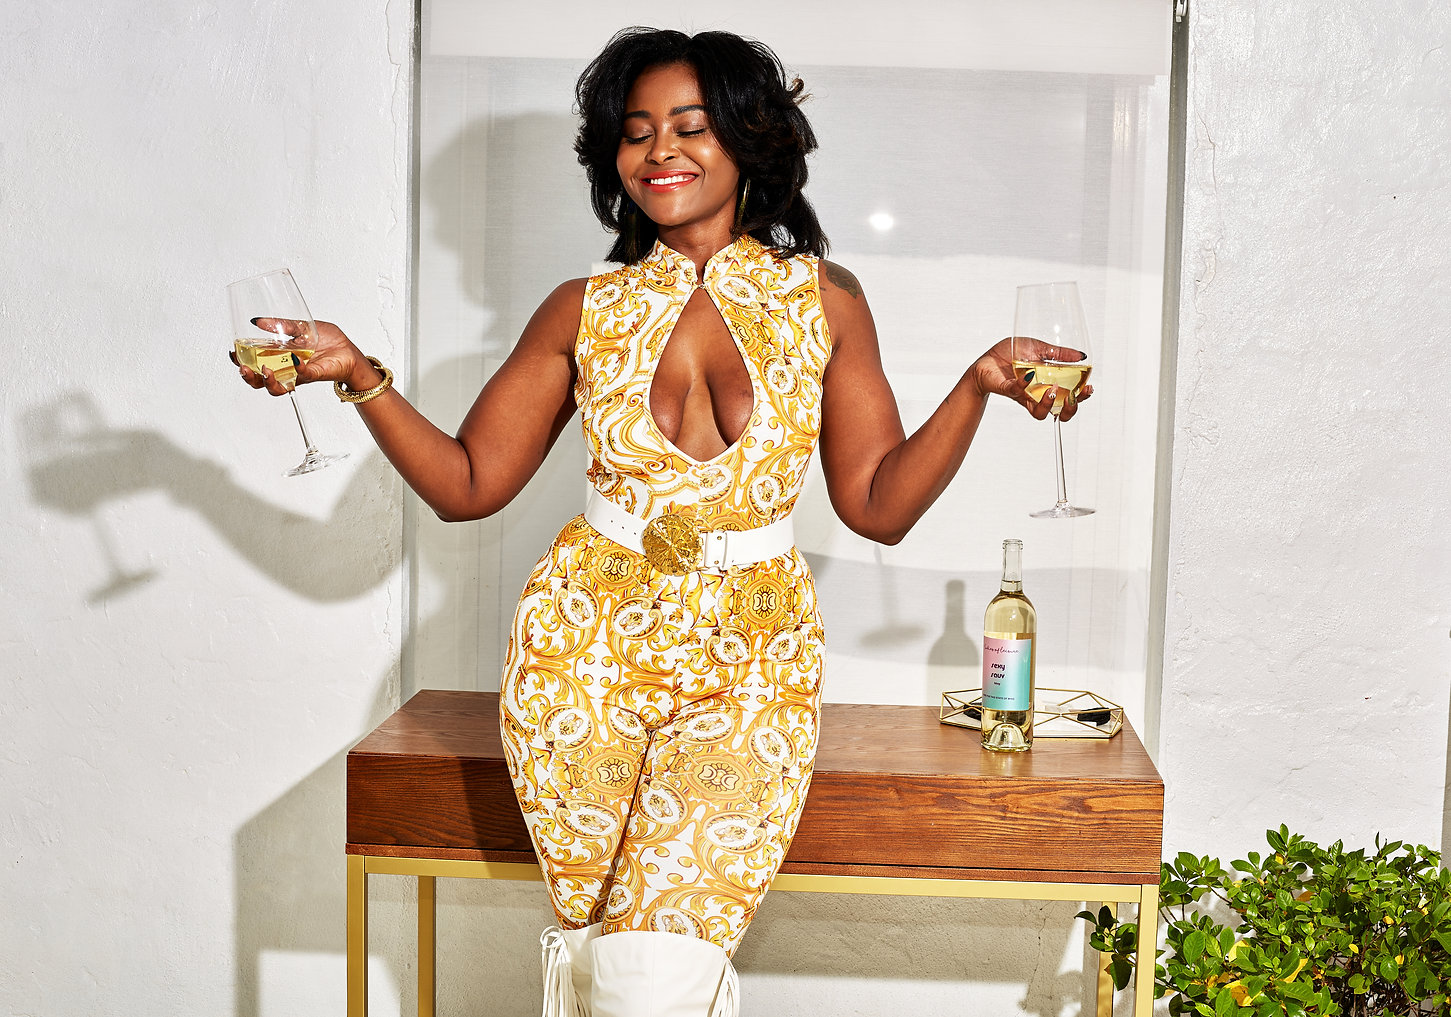 Smiling-woman-in-yellow-jumpsuit-holding